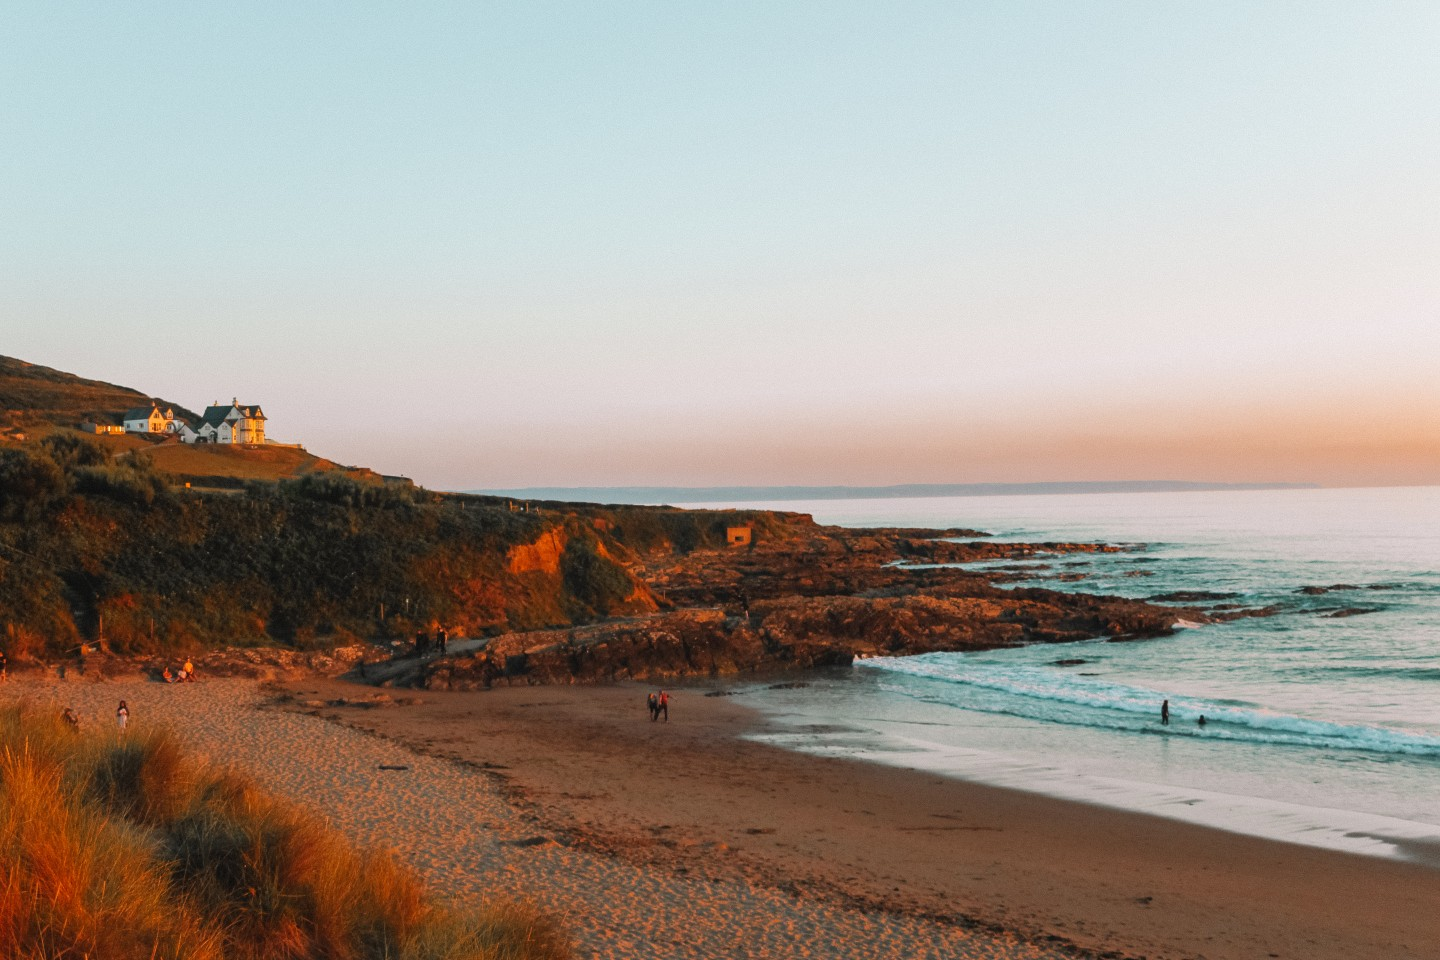 Lifestyle blogger Mollie Moore shares her review of Croyde Bay Resort in Devon, England